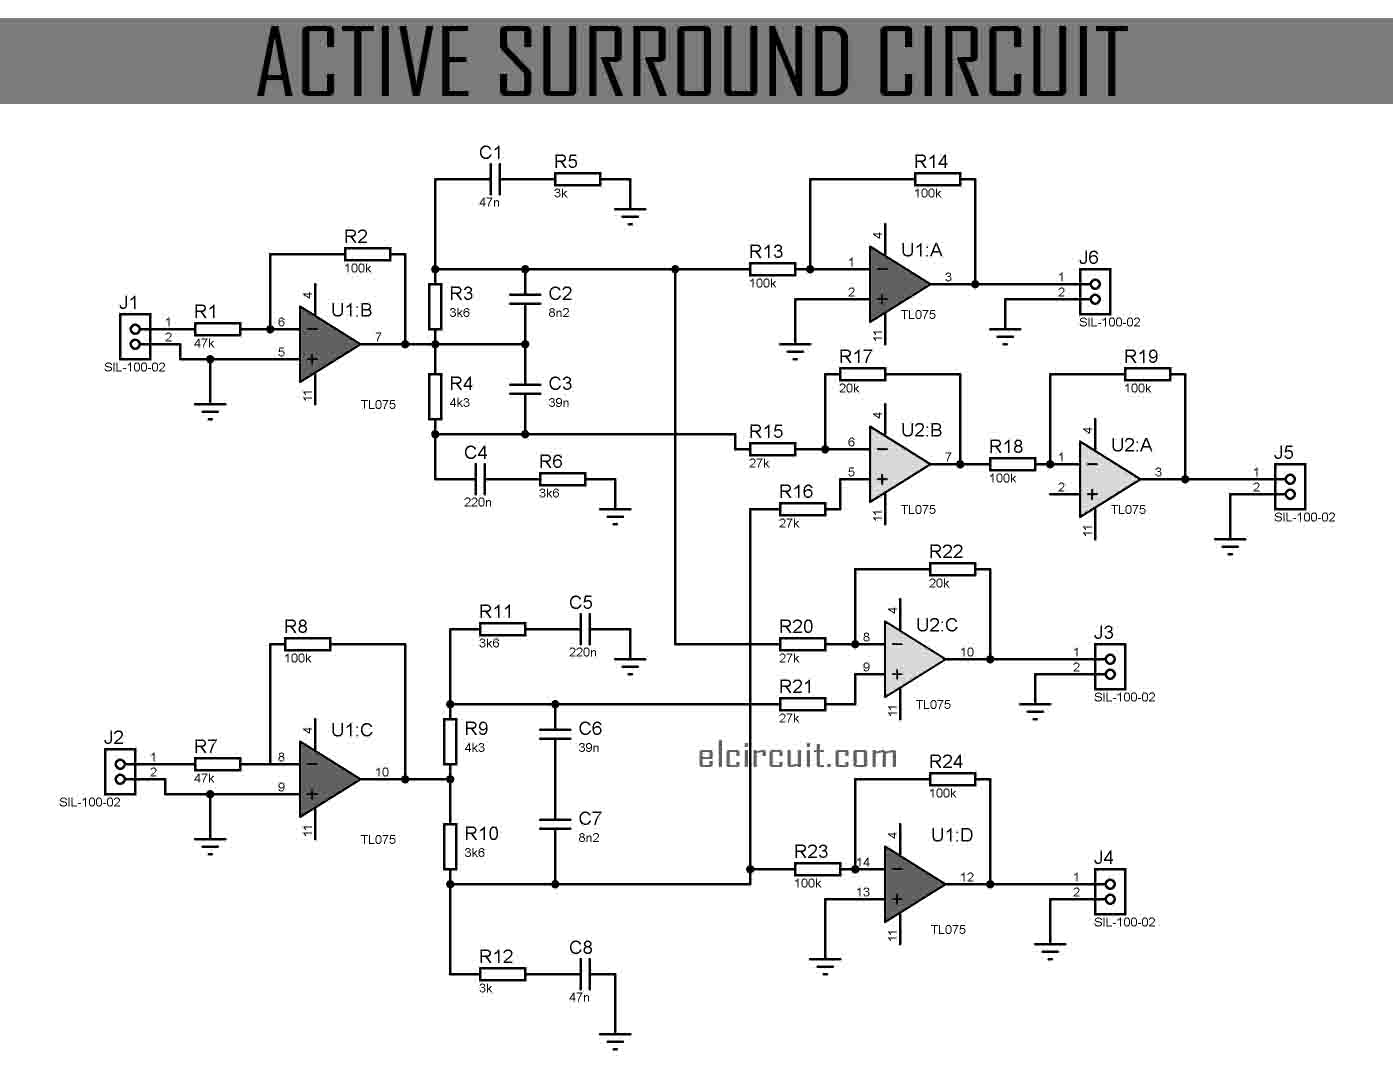 hight resolution of  add speaker subwoofer and amplifier to add more booming bass sound below the active surround sound circuit diagram include regulated power supply 12v